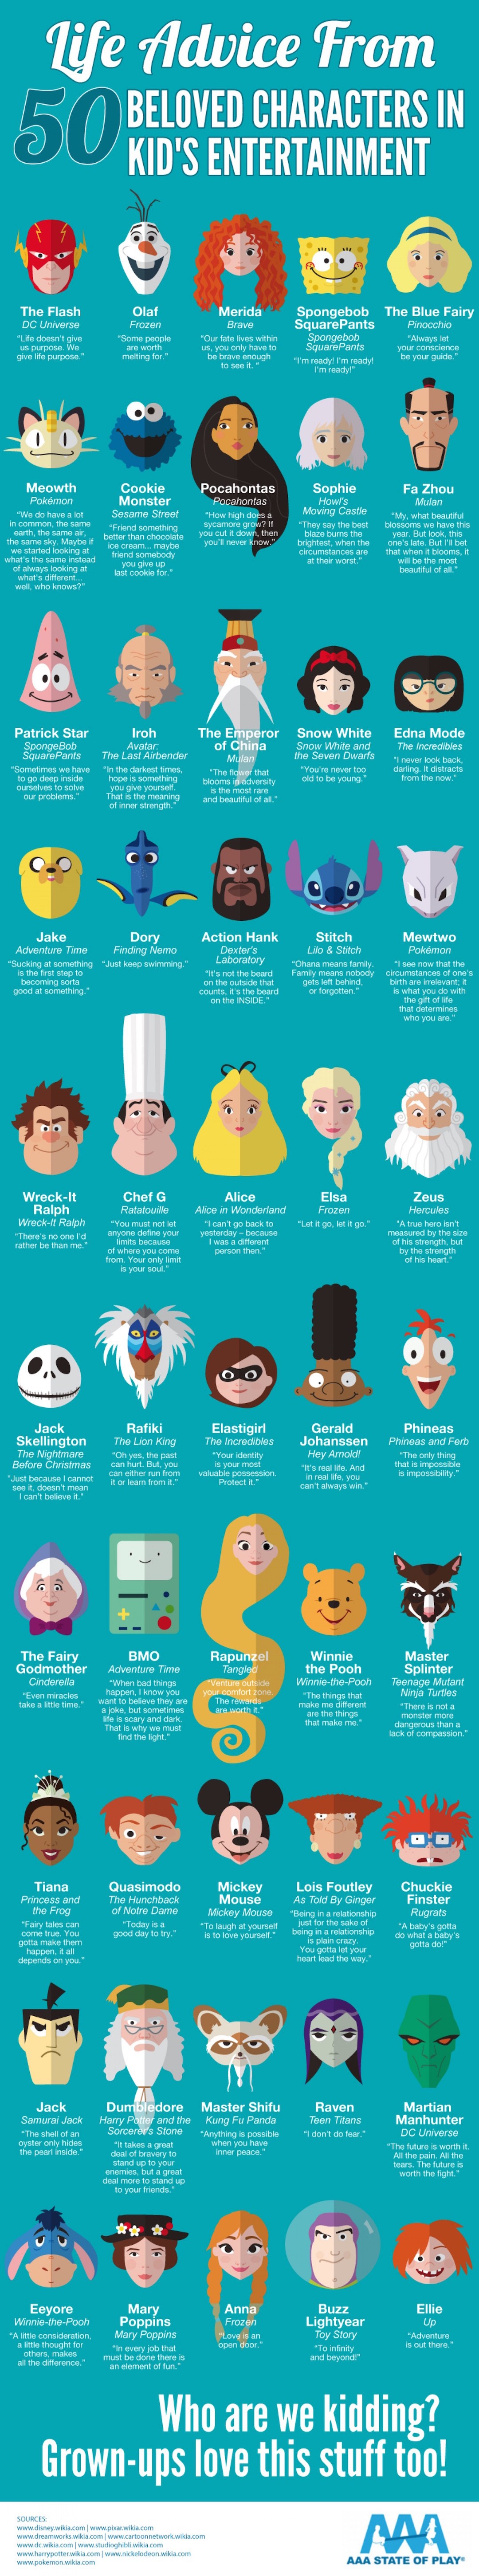 Life quotes from famous book cartoon characters #infographic